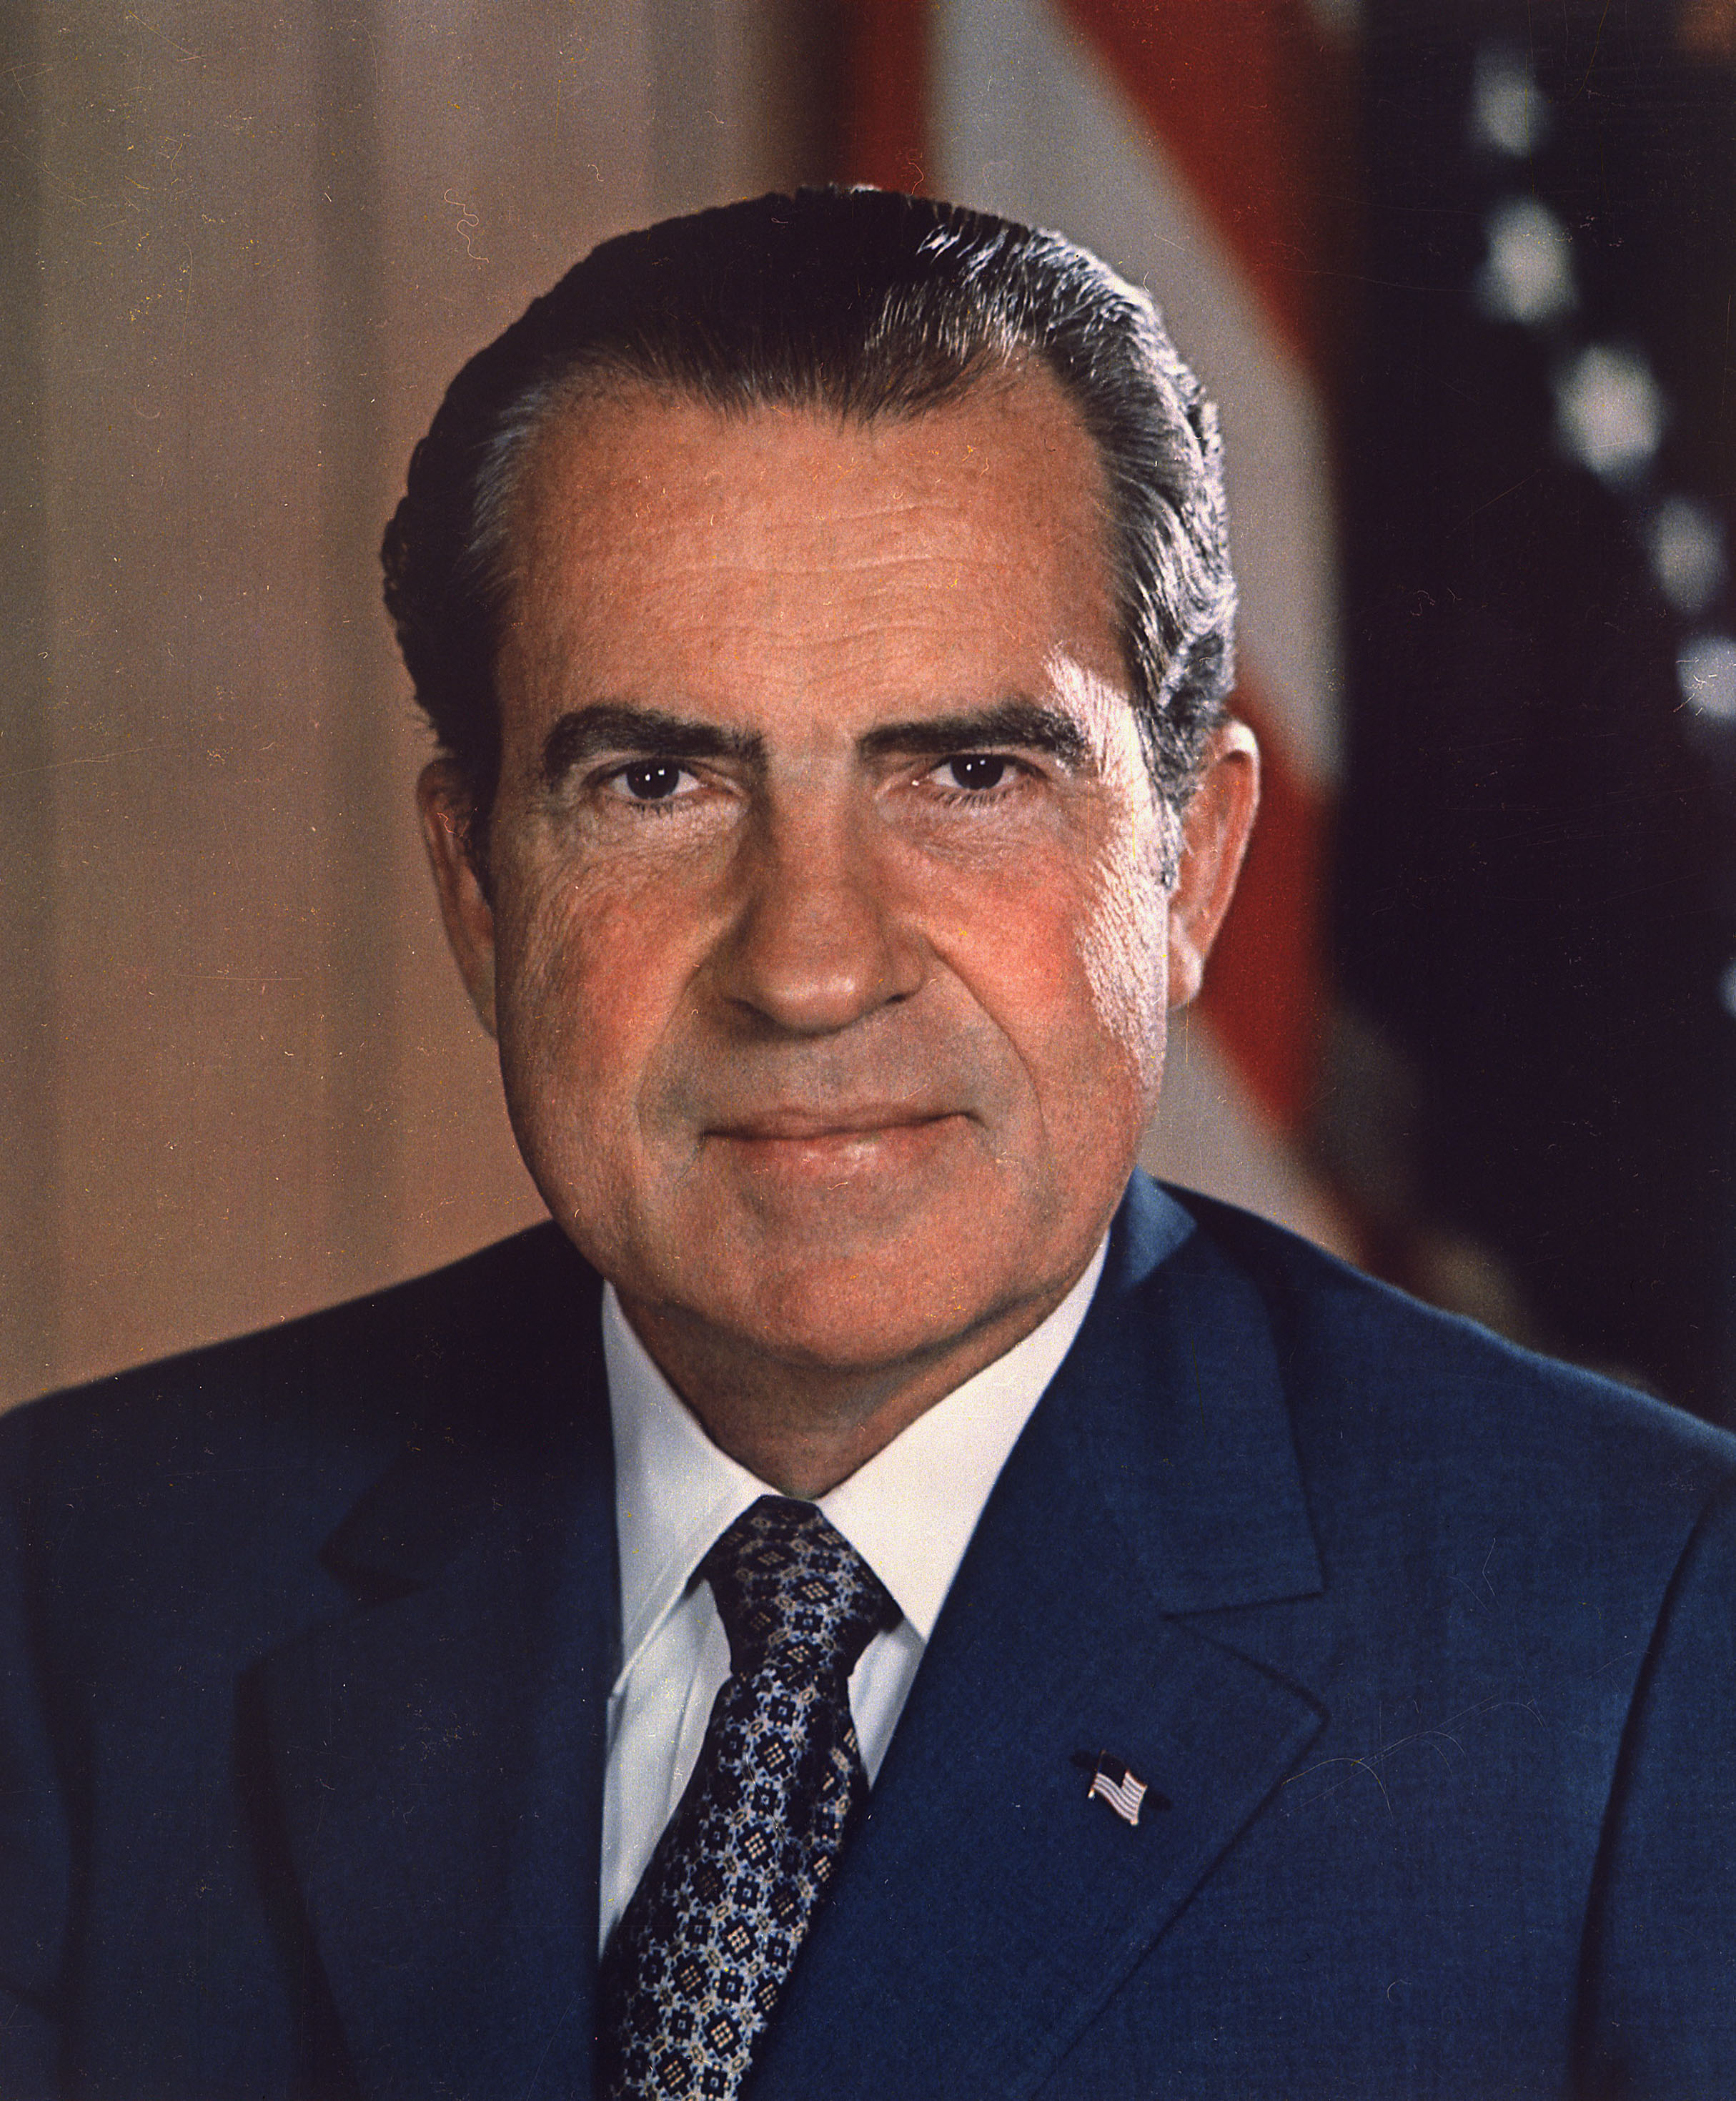 fef802fe4 Richard Nixon - Wikipedia